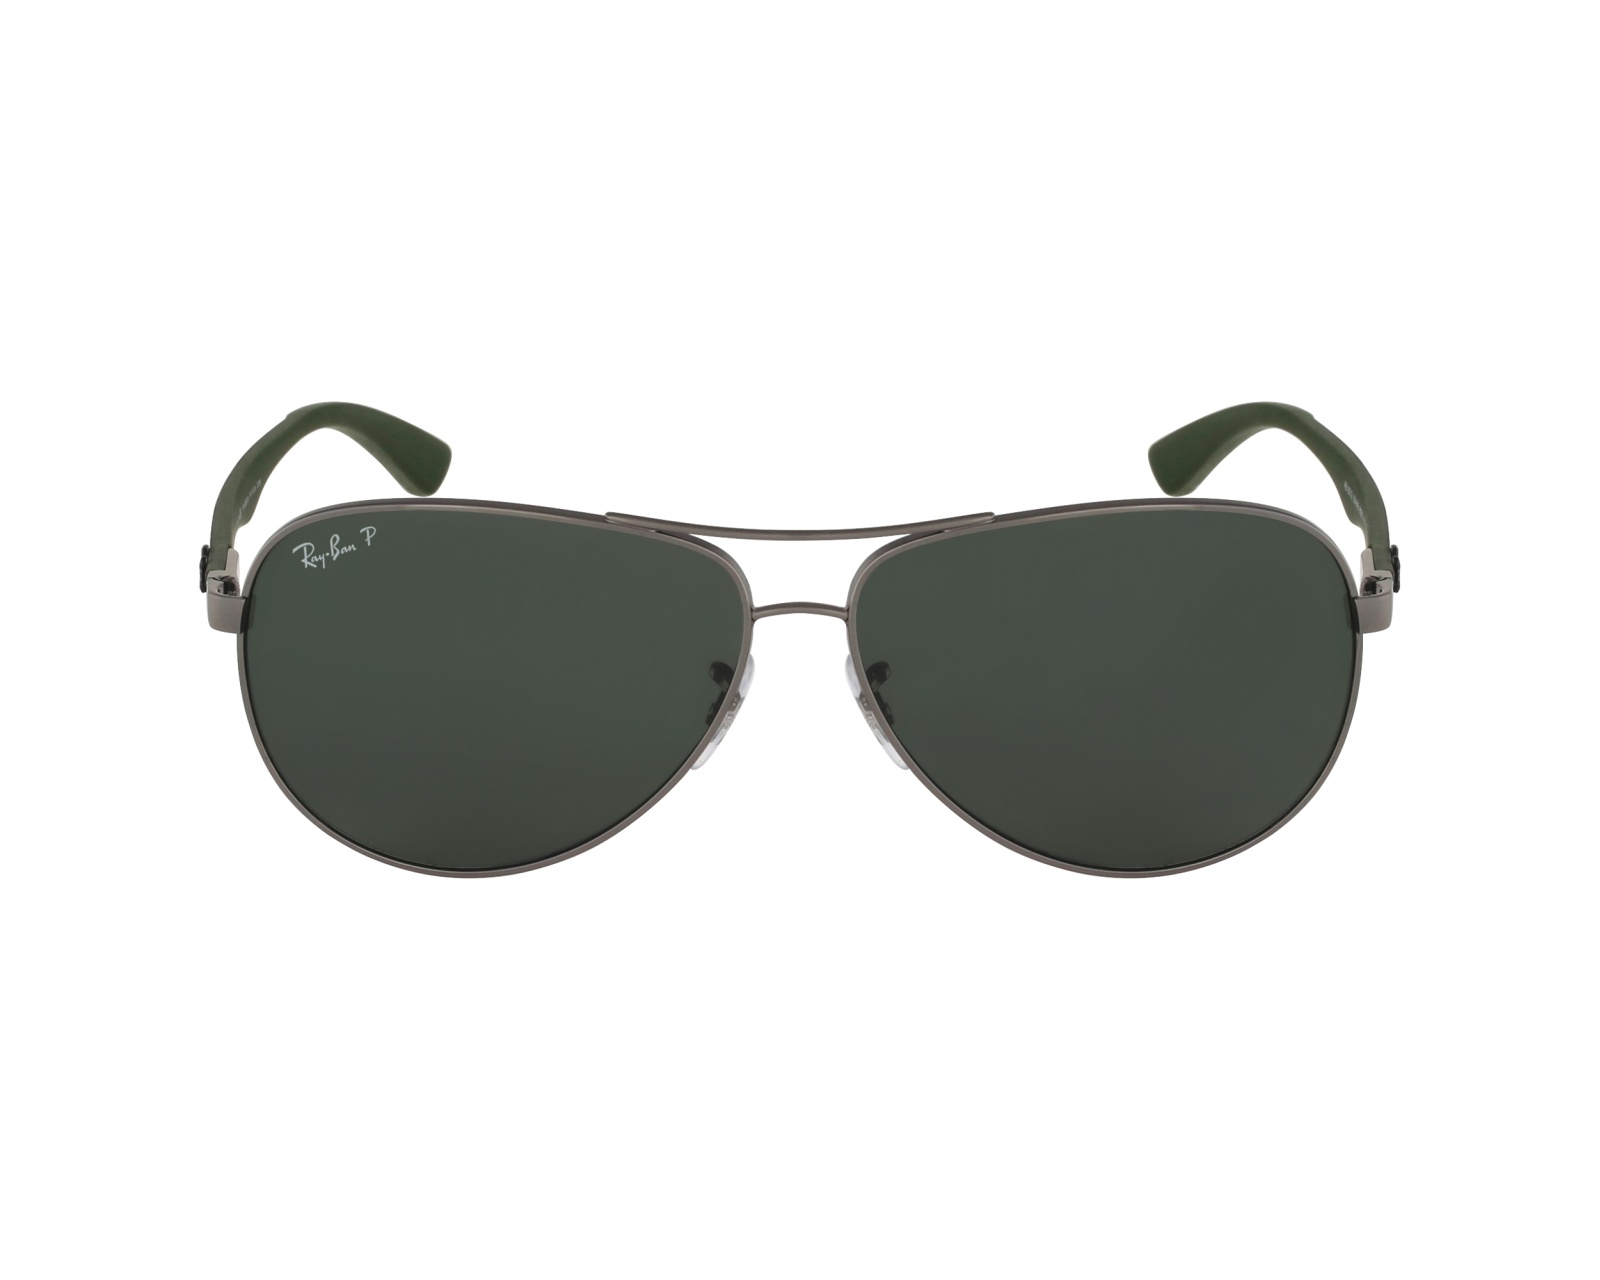 639056a2c71512 Sunglasses Ray-Ban RB-8313 004 N5 58-13 Gun profile view